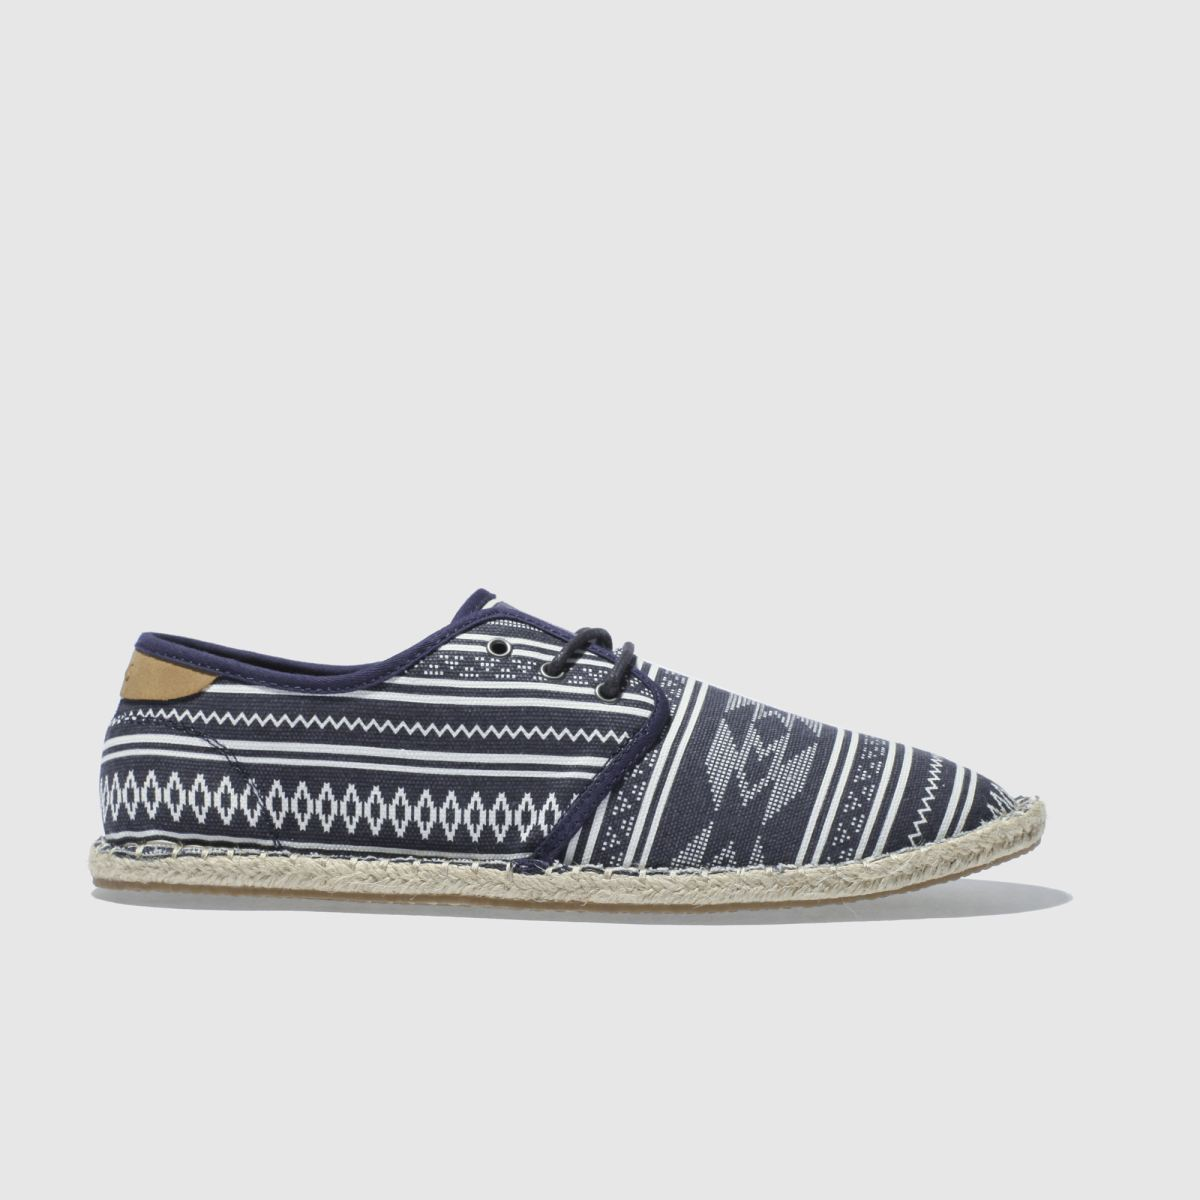 TOMS Toms Navy & White Diego Shoes